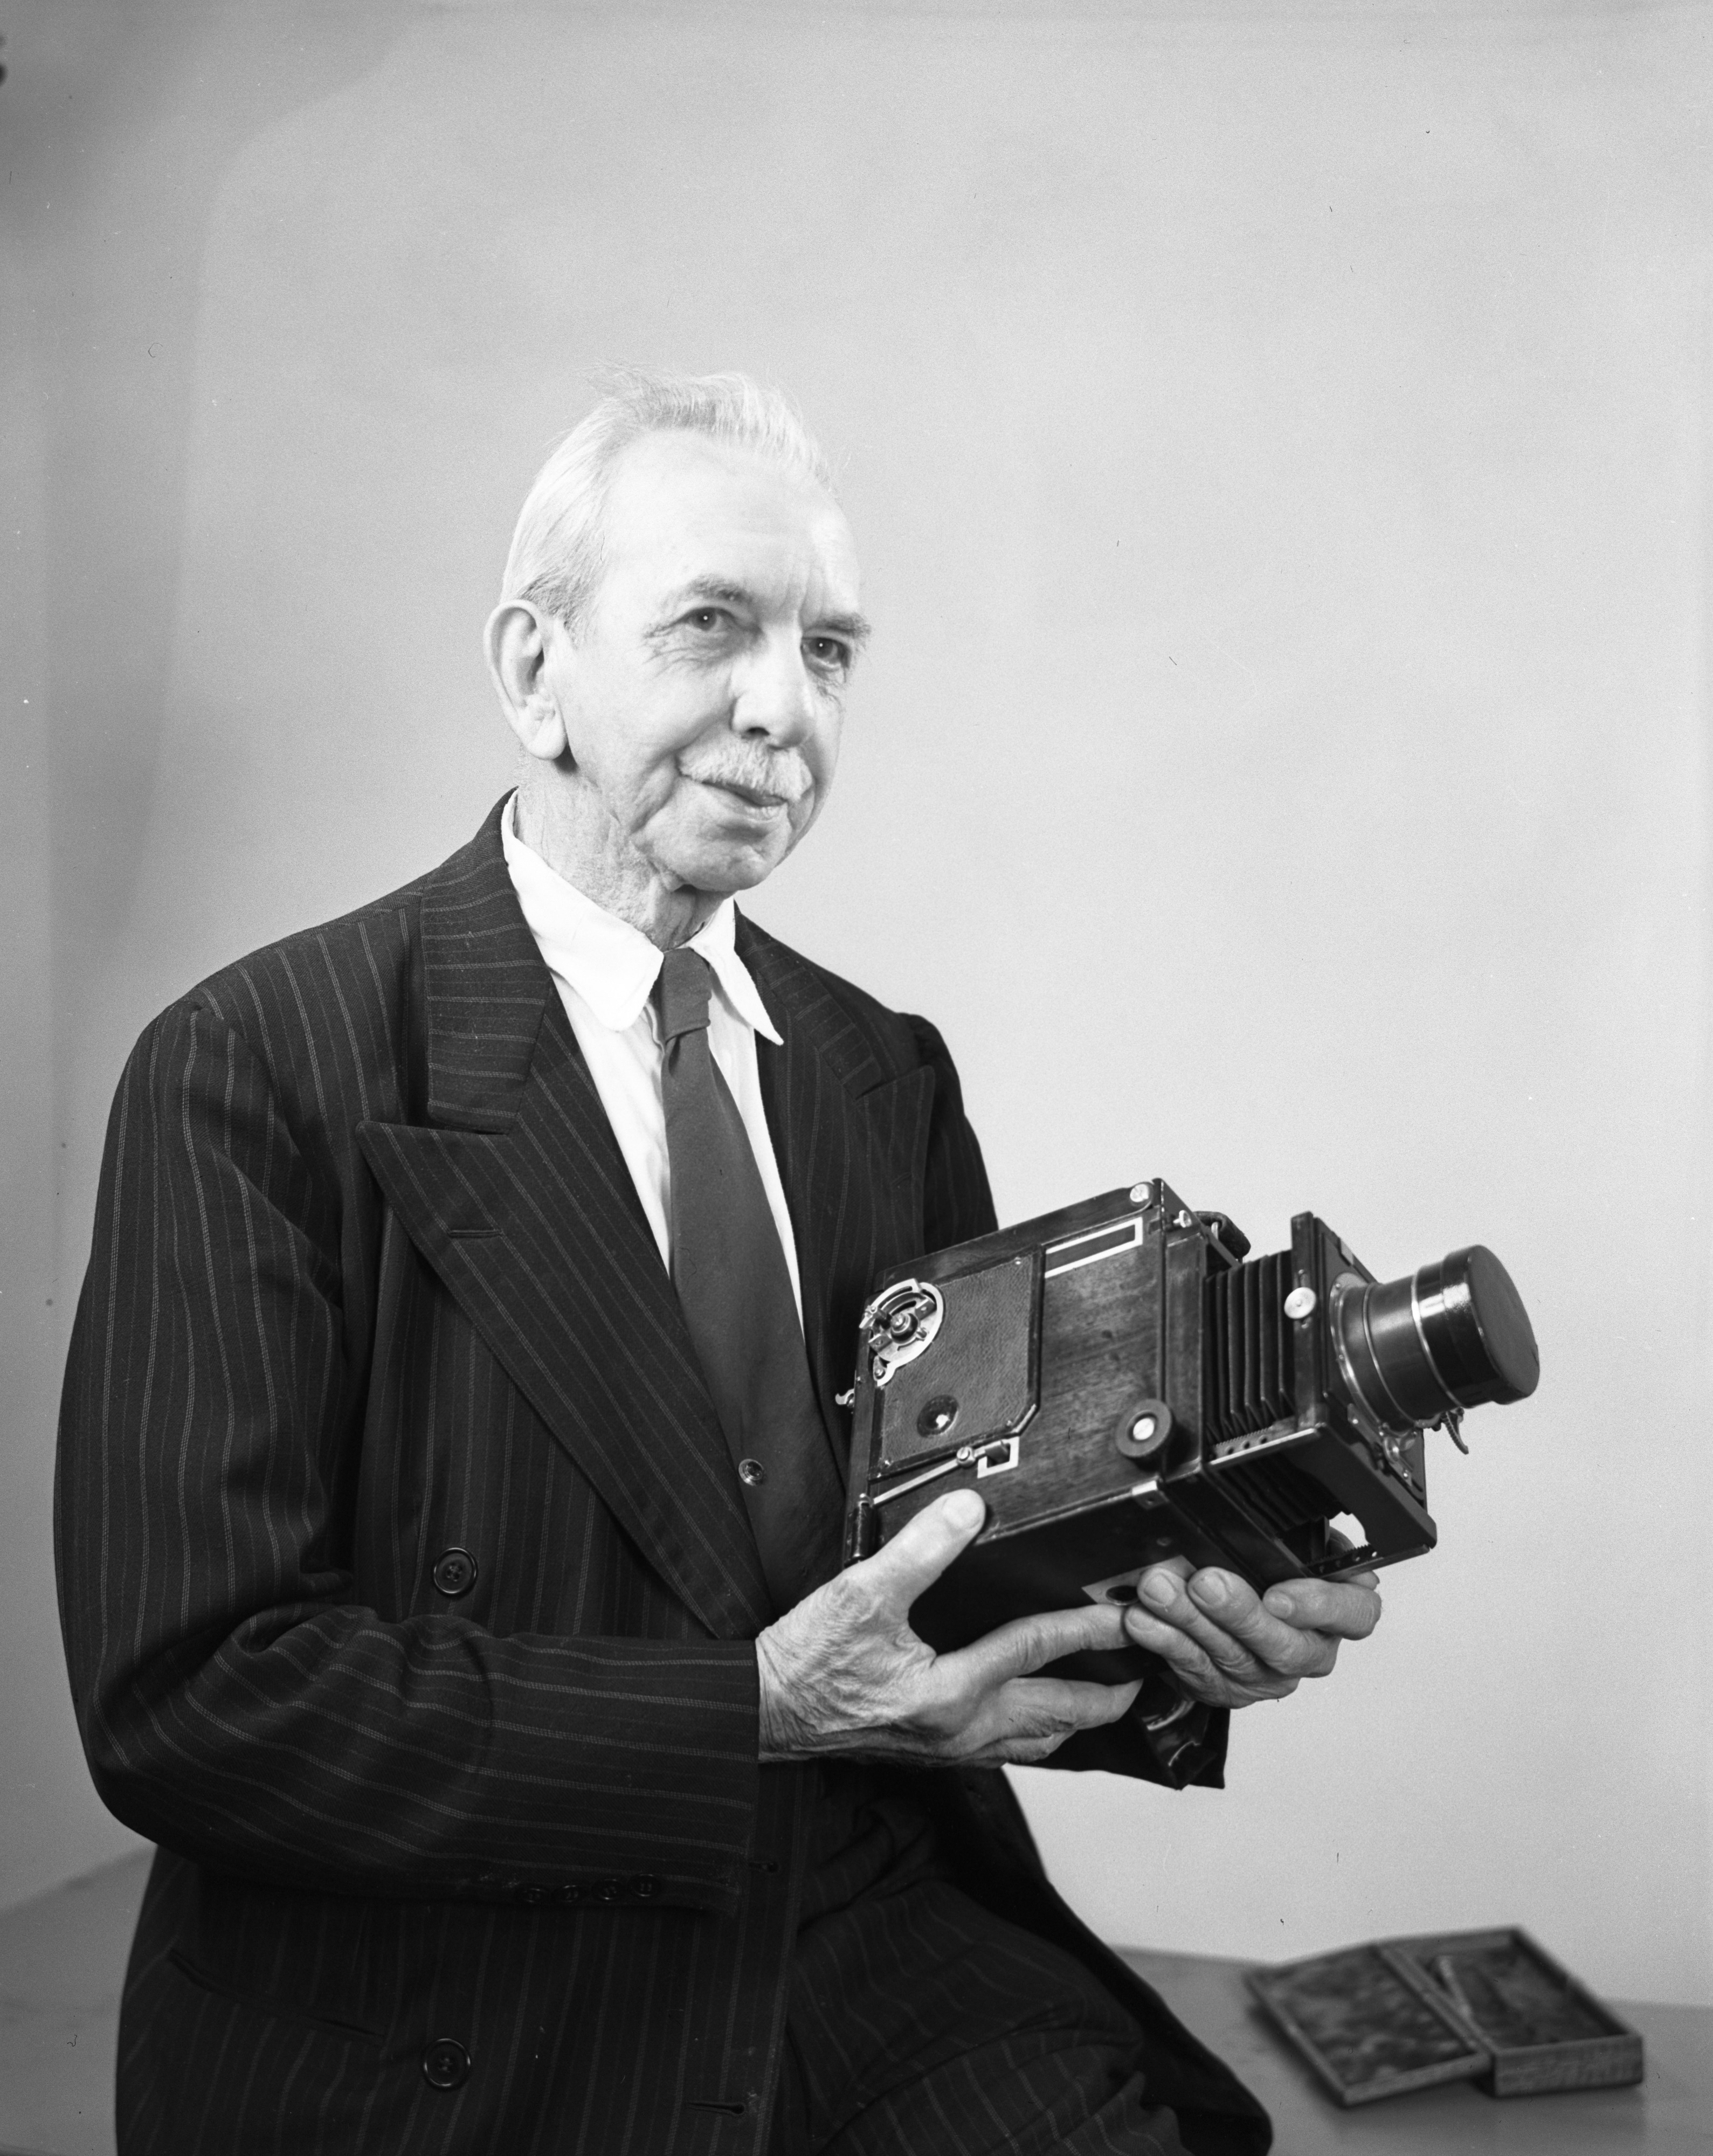 A.D. Johnson, painter, inventor, photographer, May 1948 image